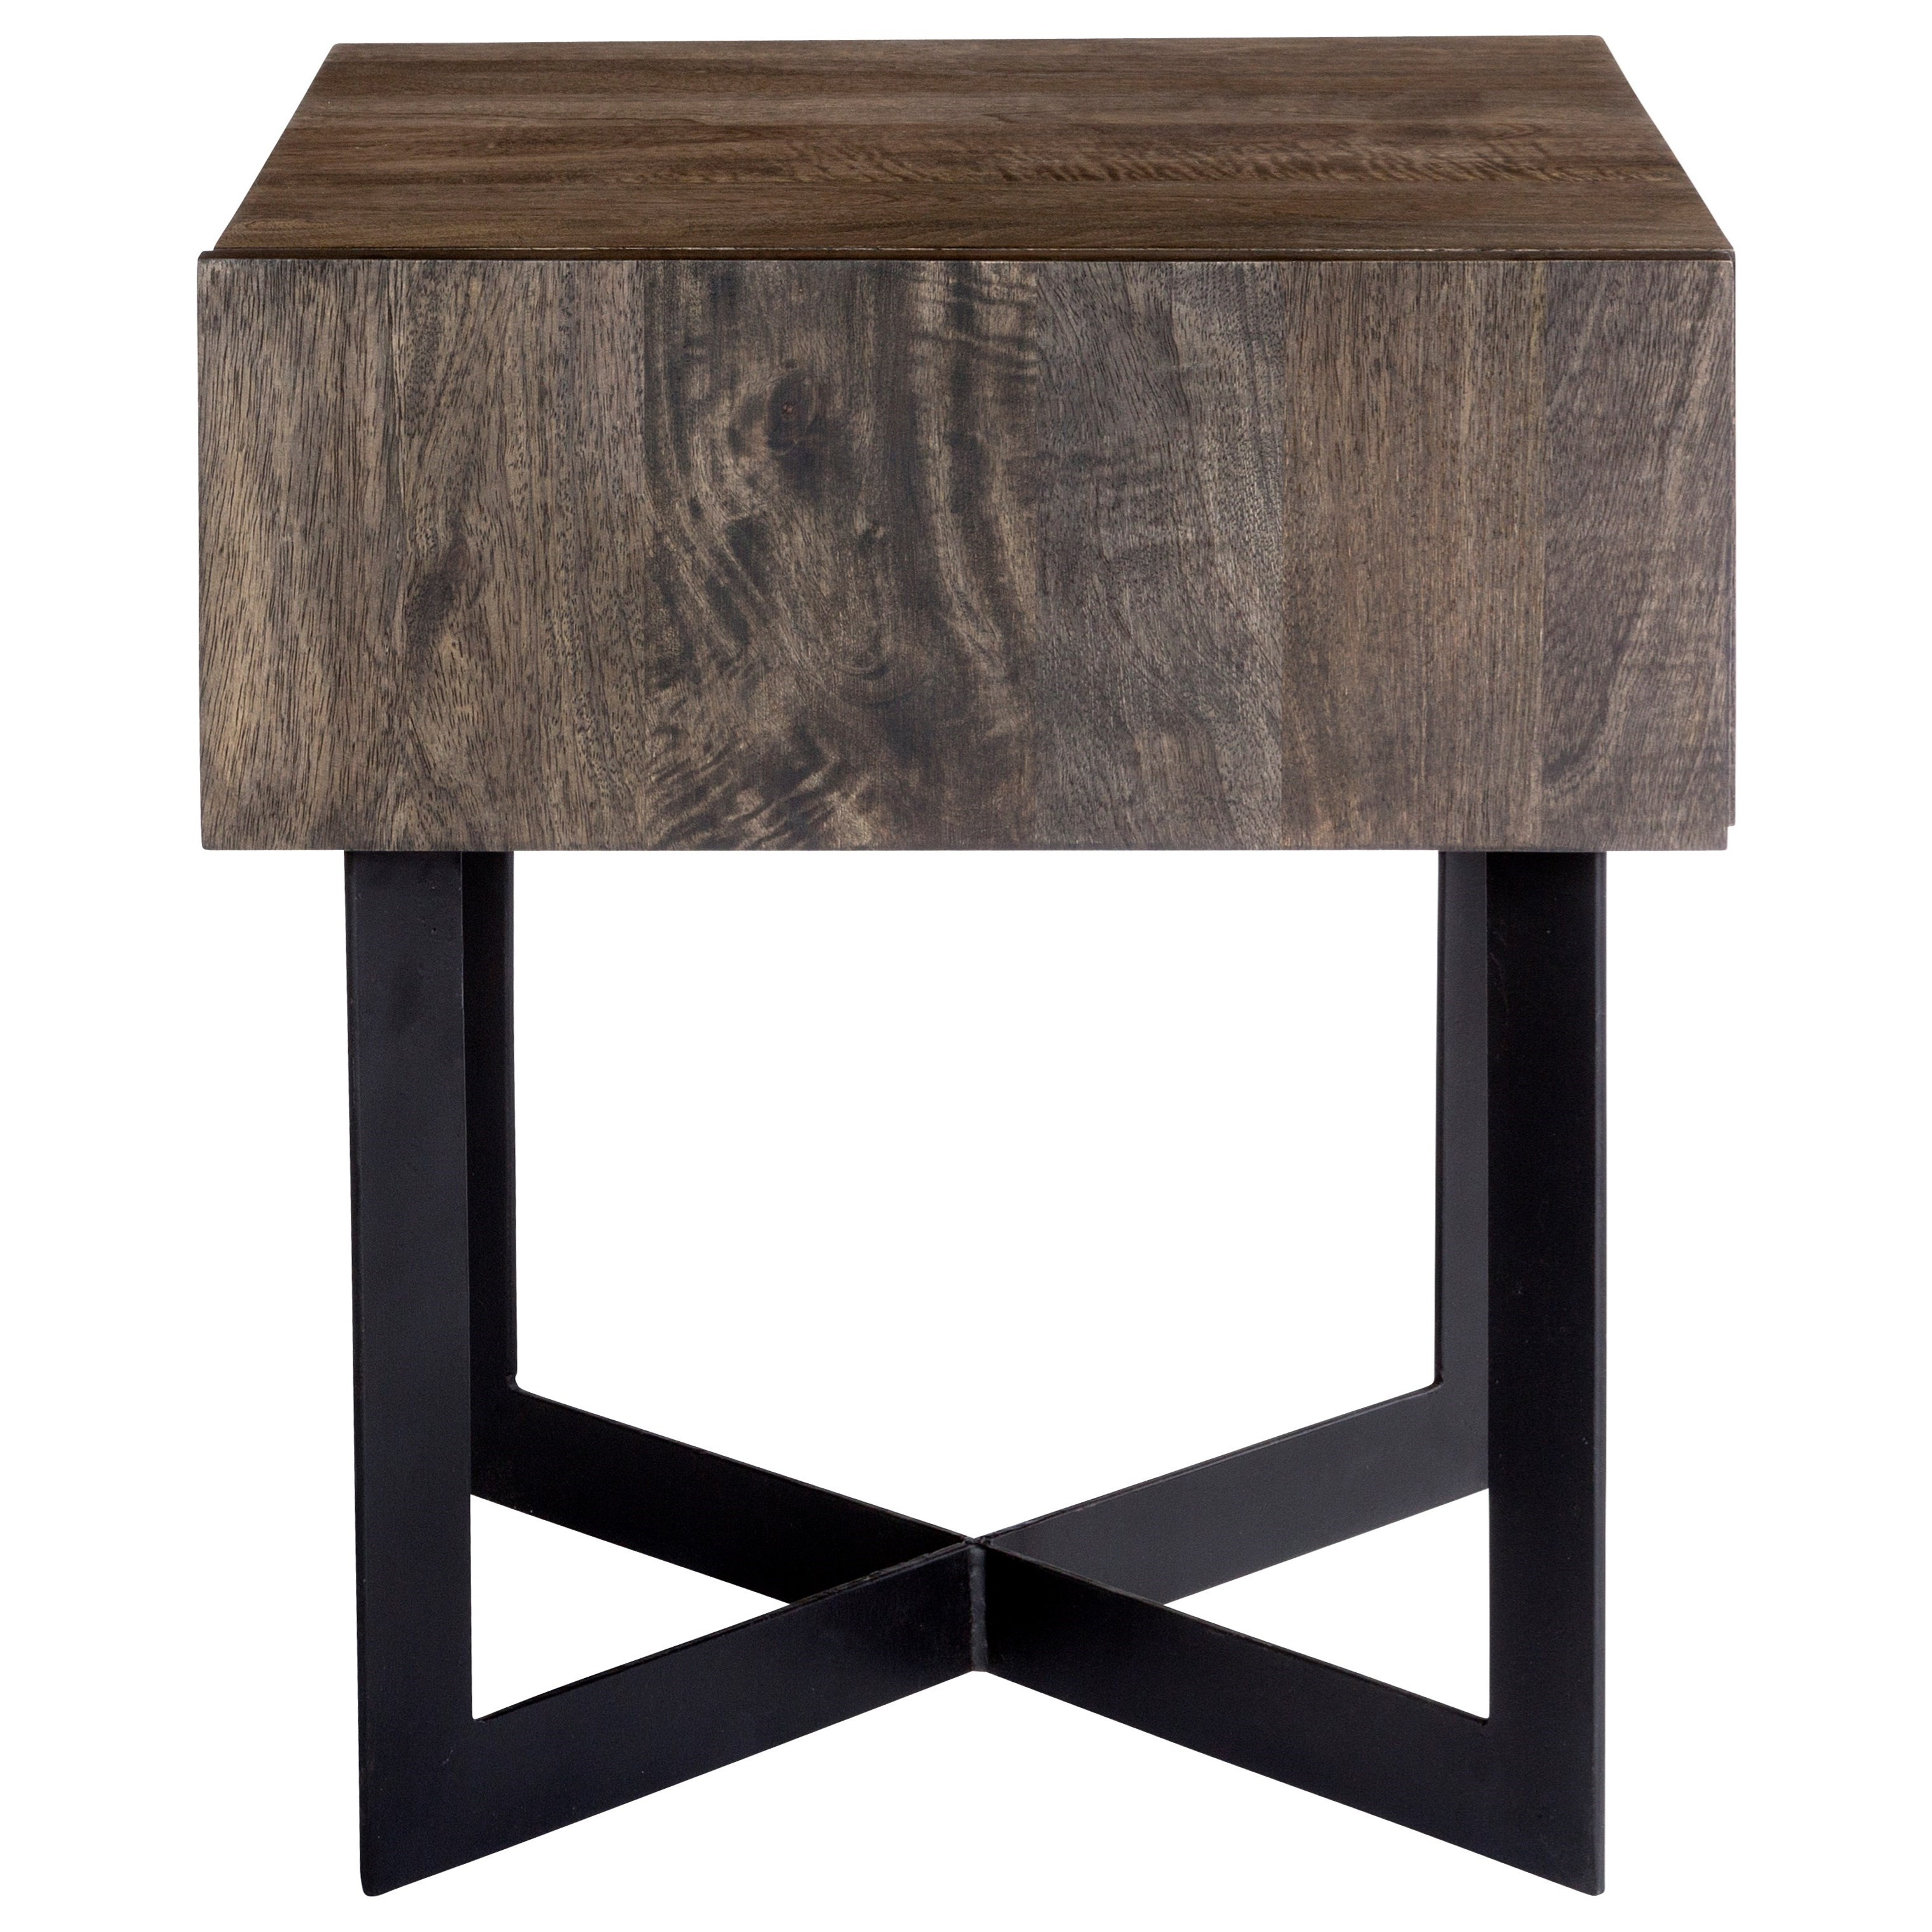 Moe's Home Collection Tiburon Side Table - Item Number: SR-1020-24